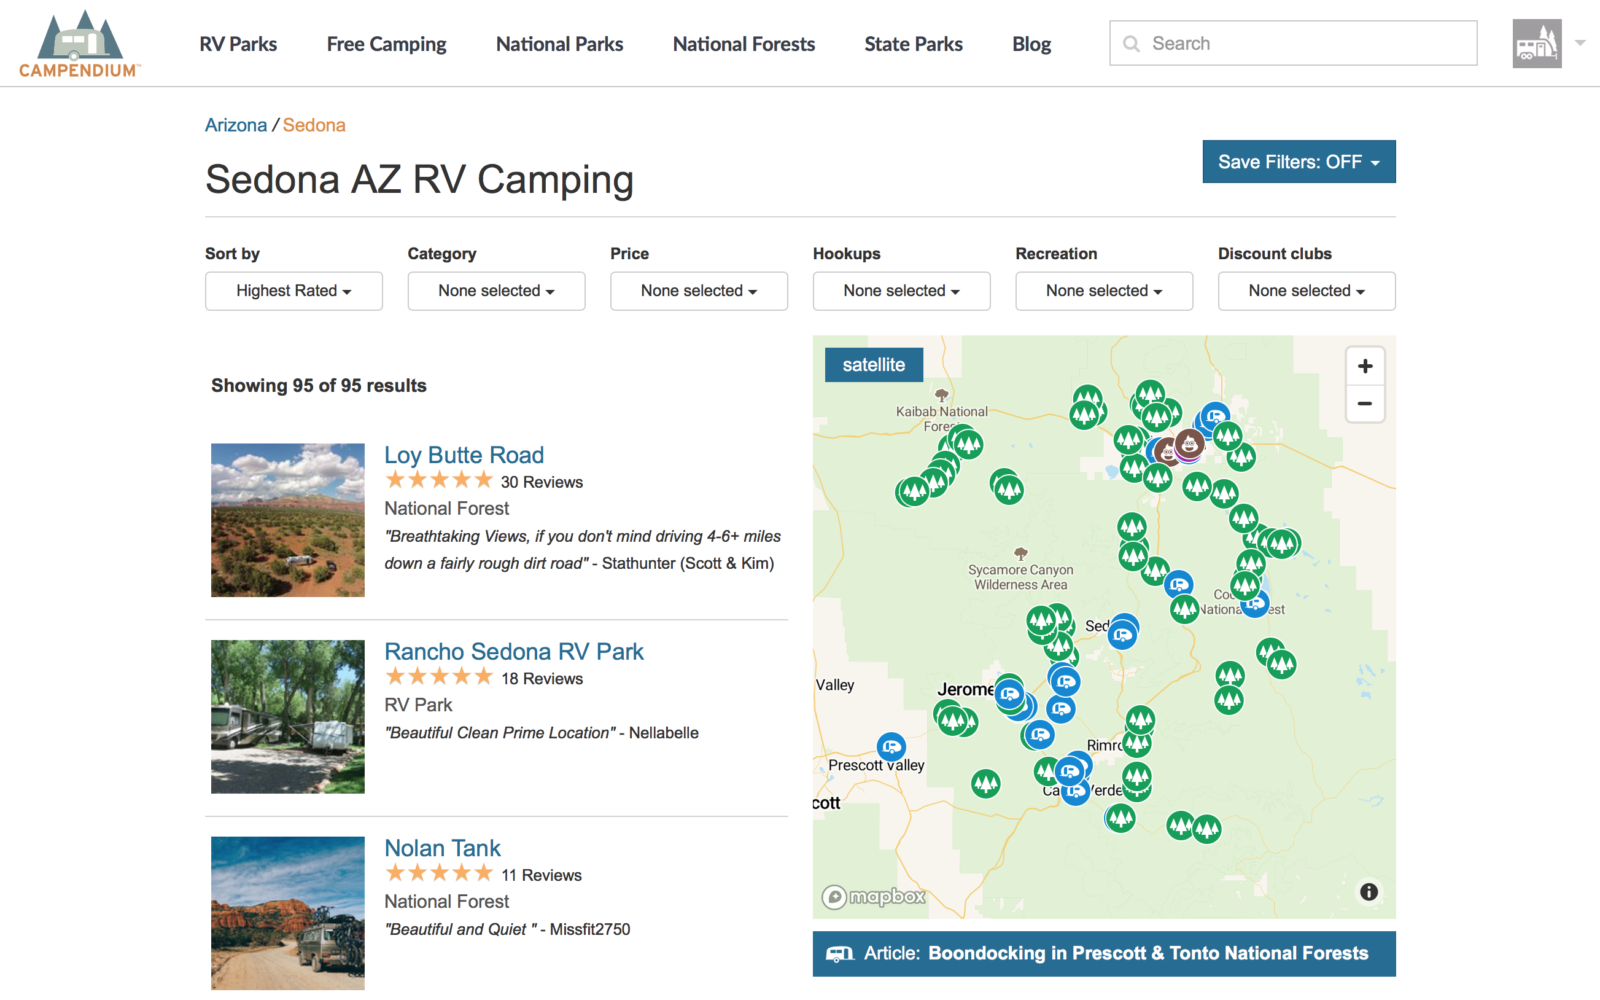 Campsite Search using Campendium.com